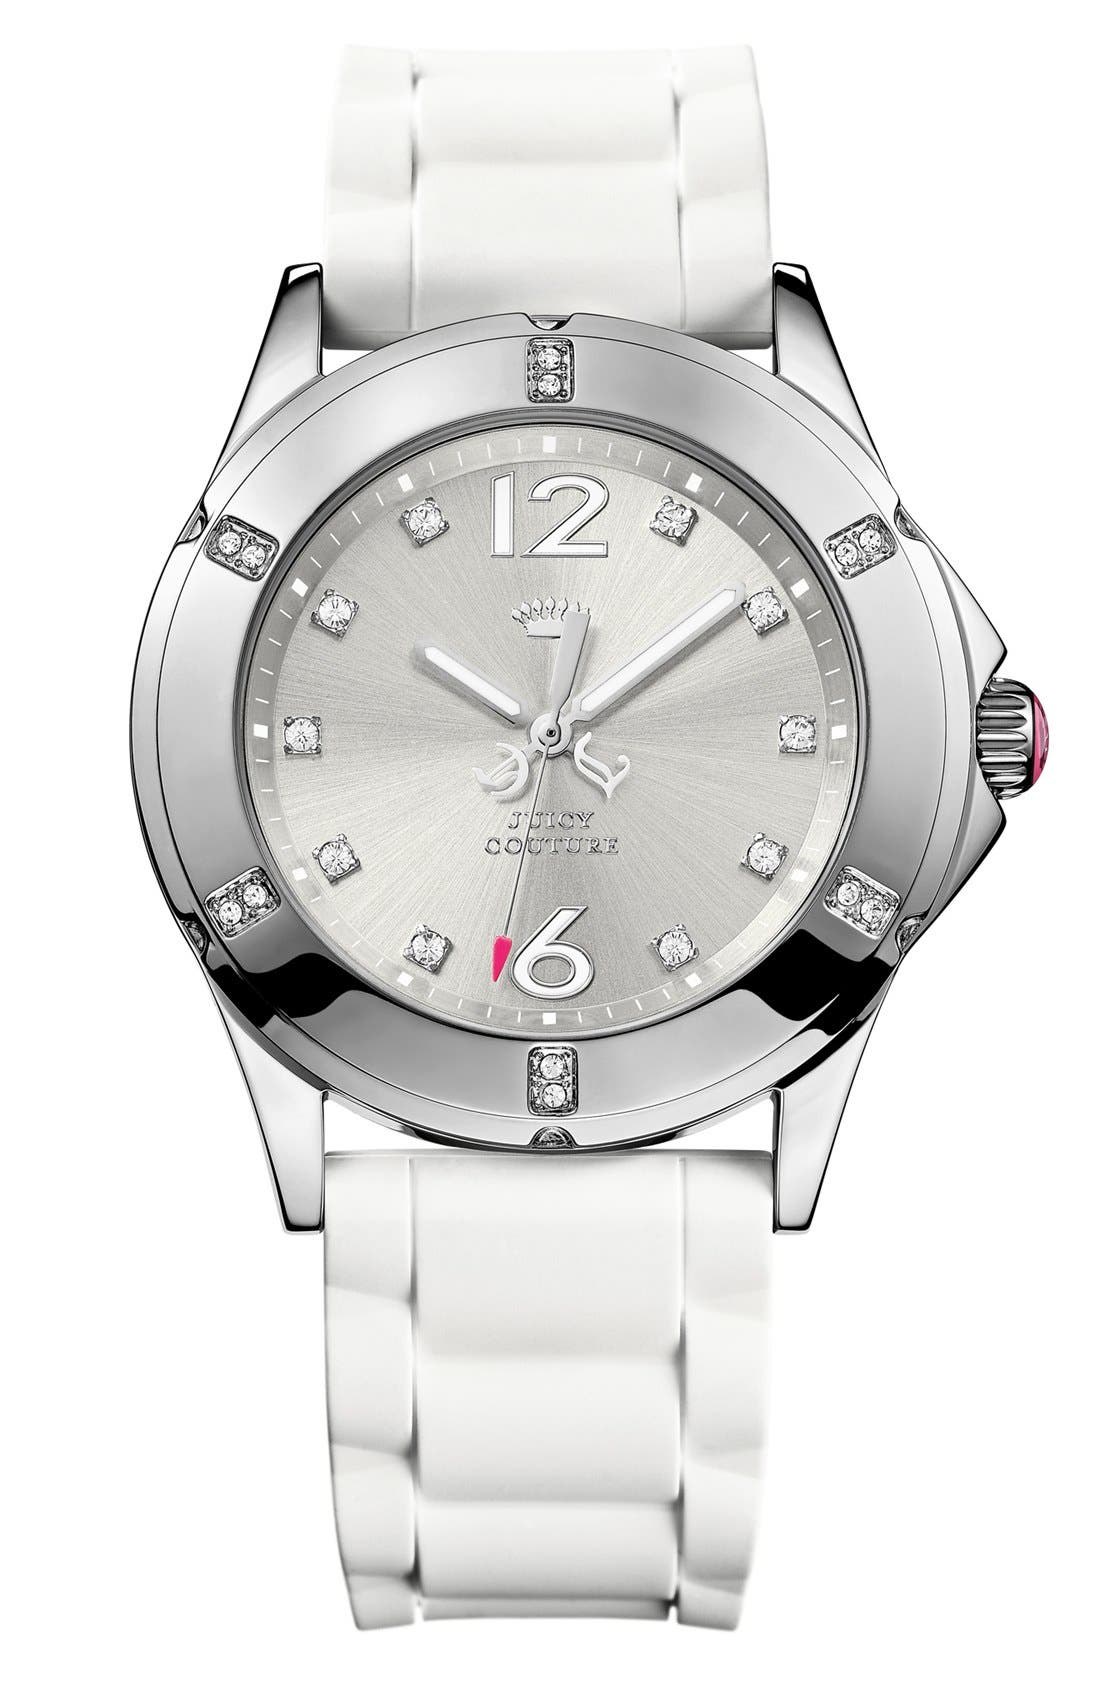 Main Image - Juicy Couture 'Rich Girl' Crystal Dial Watch